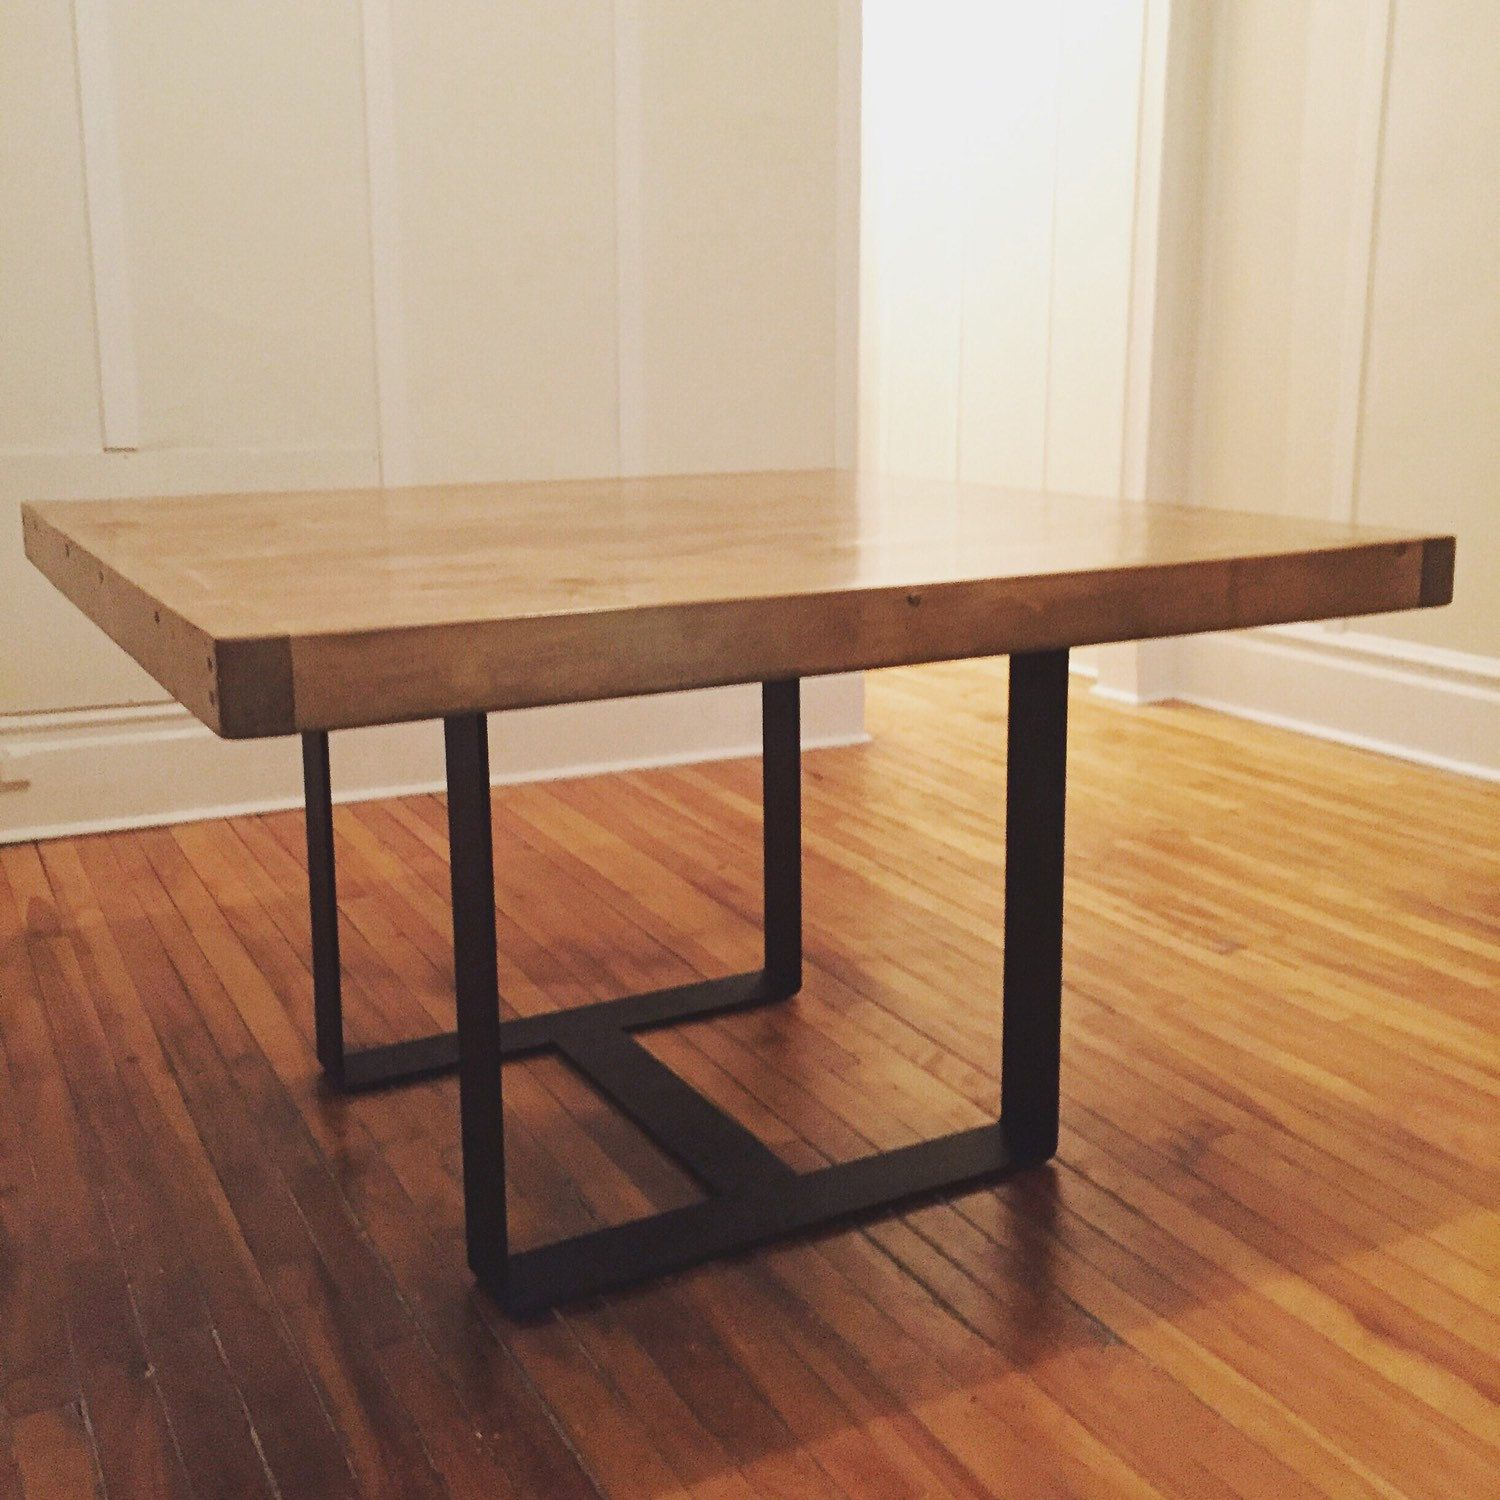 Table Carrée Cuisine: Our Brand New Squared Dining Table With 4'' Wrought Iron